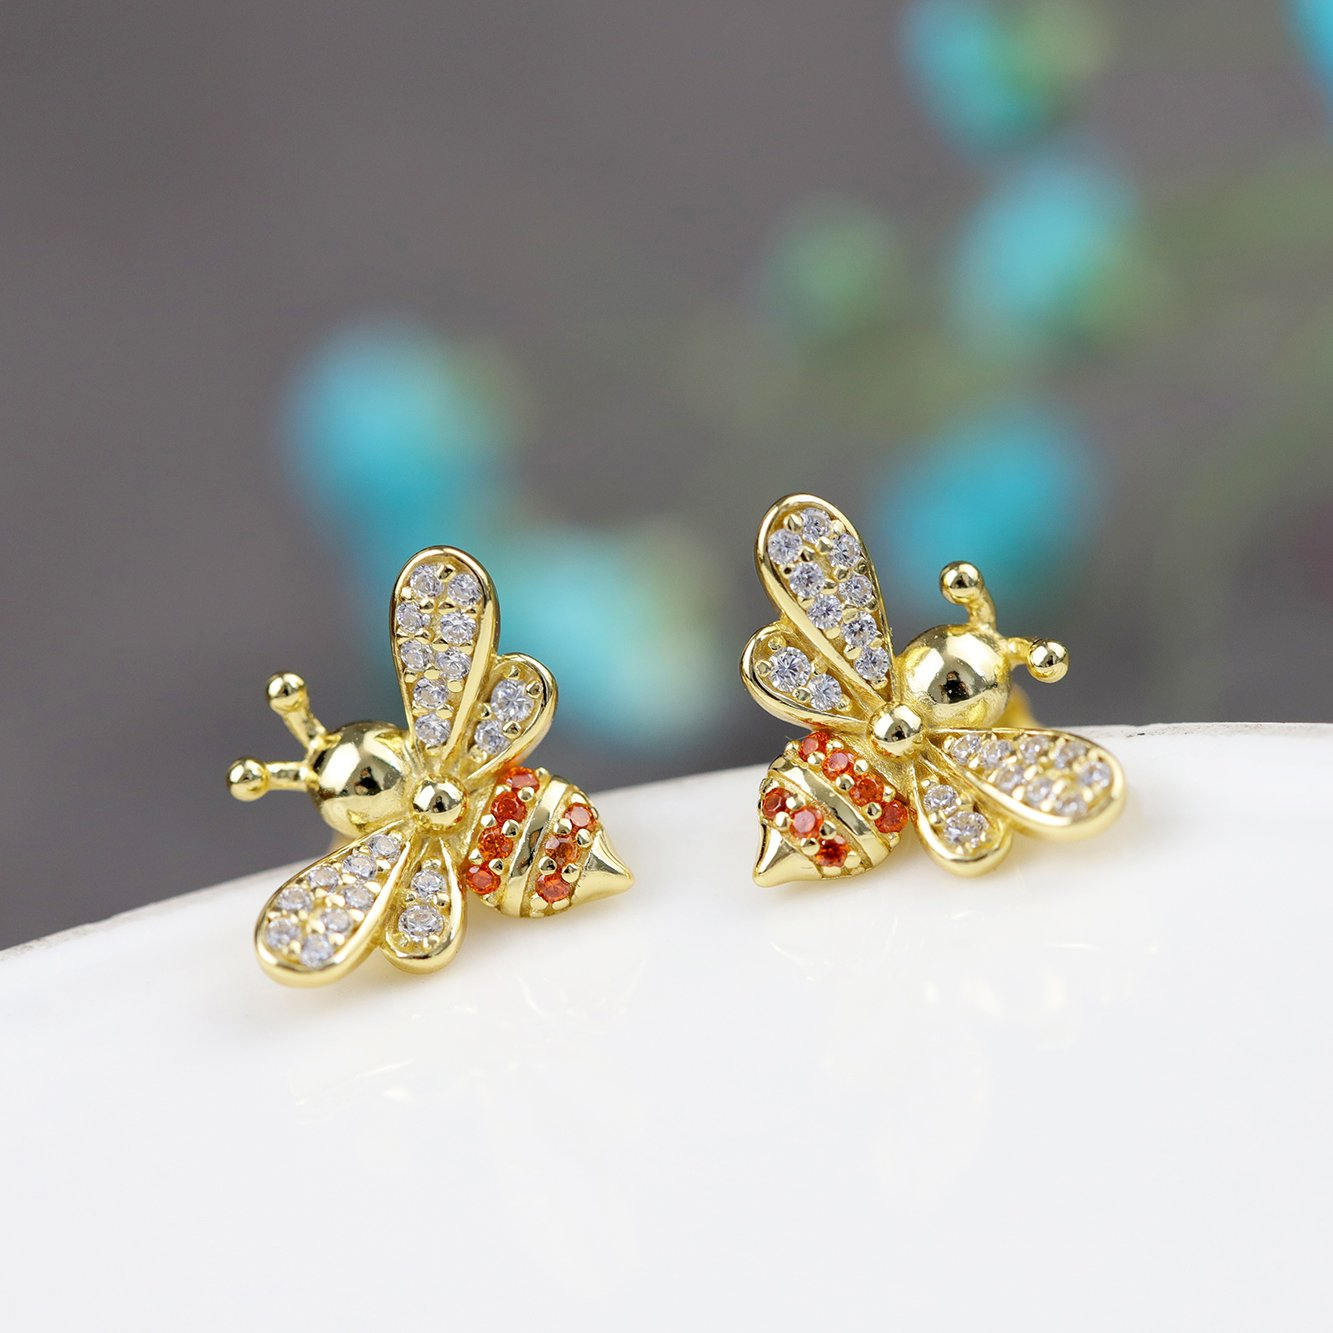 Lovely Glod Bee Kiss Stud Earrings